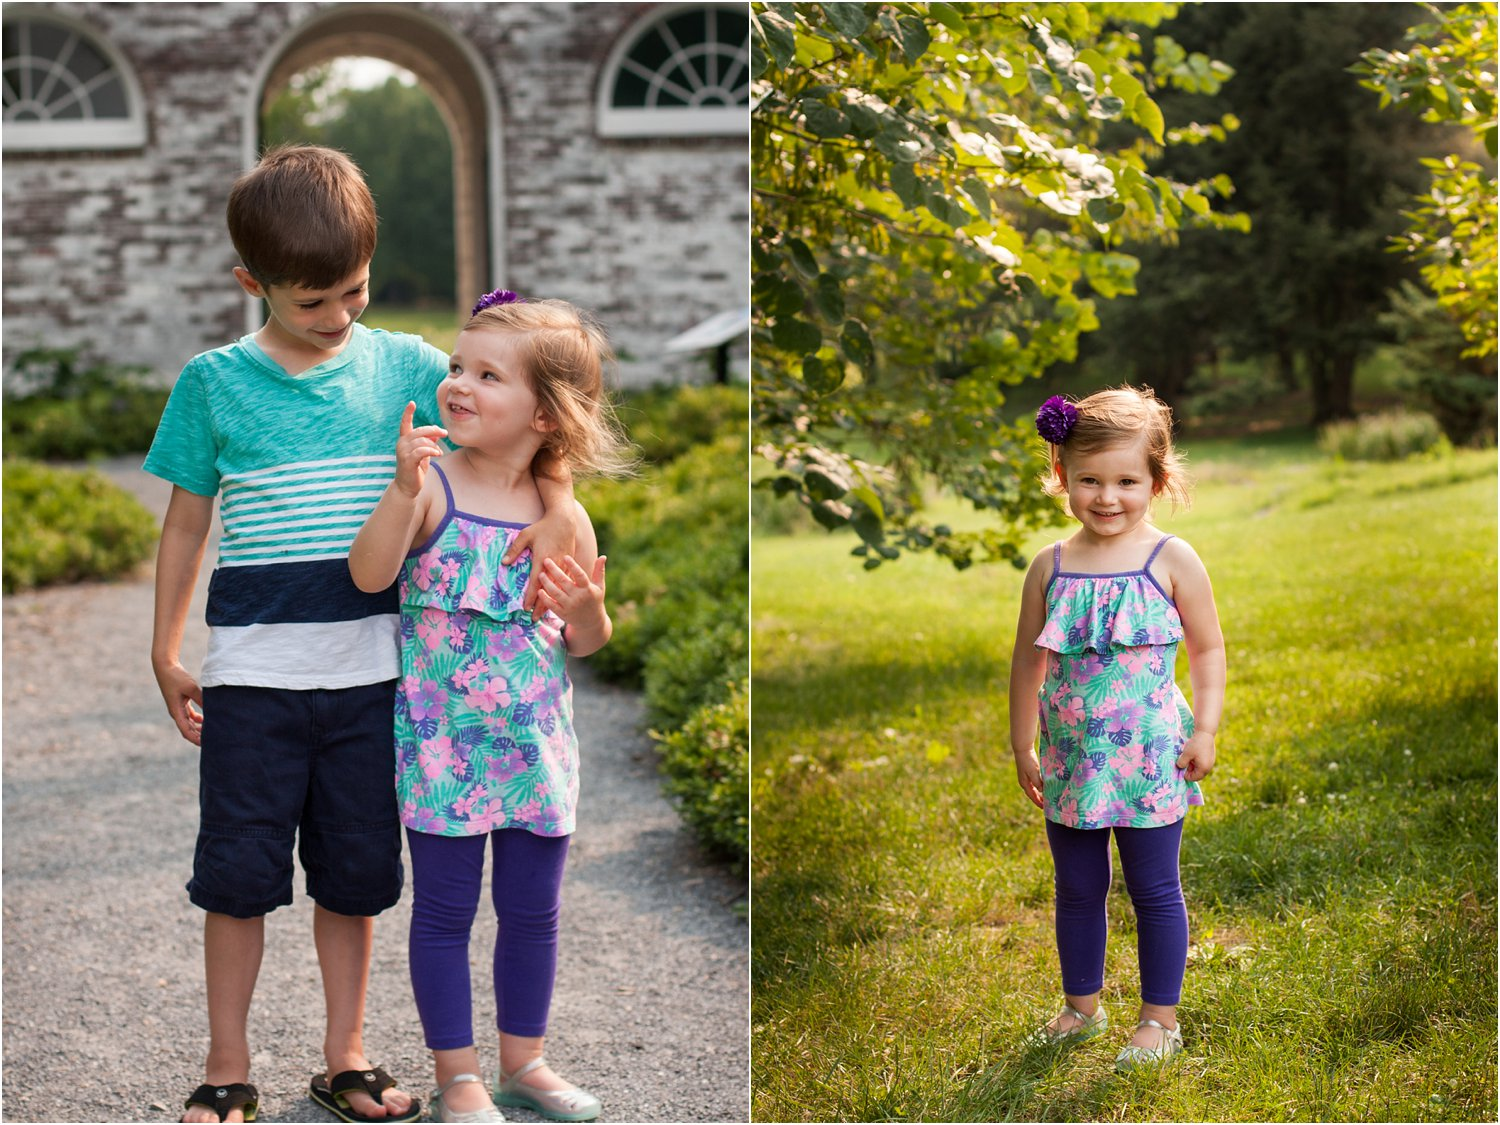 Blandy_Arboretum_Sibling_Mini_Sessions_Ouzts_0002.jpg